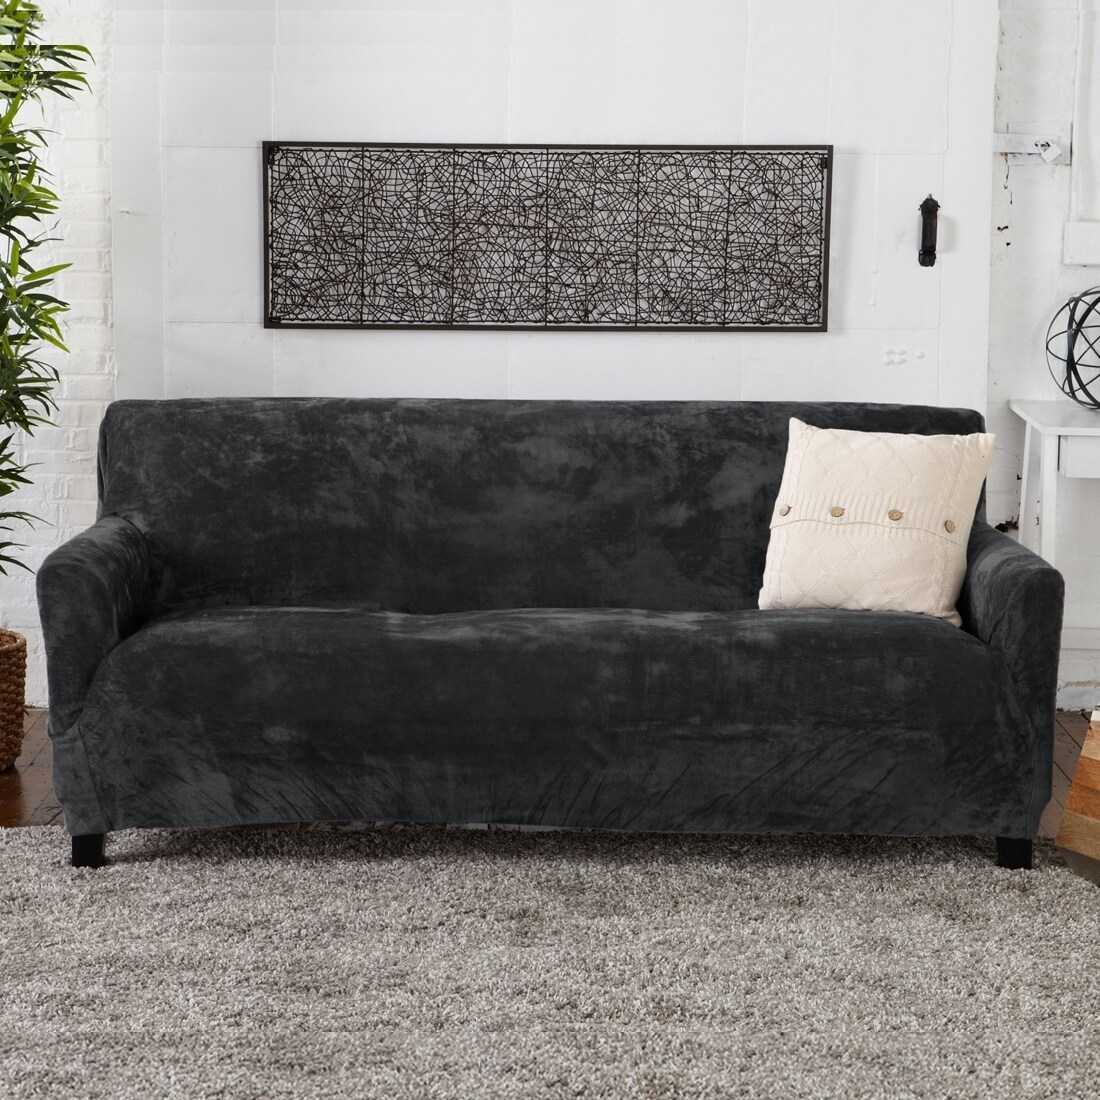 Couch Cover Sofa Buy Sofa Couch Slipcovers Online At Overstock Our Best